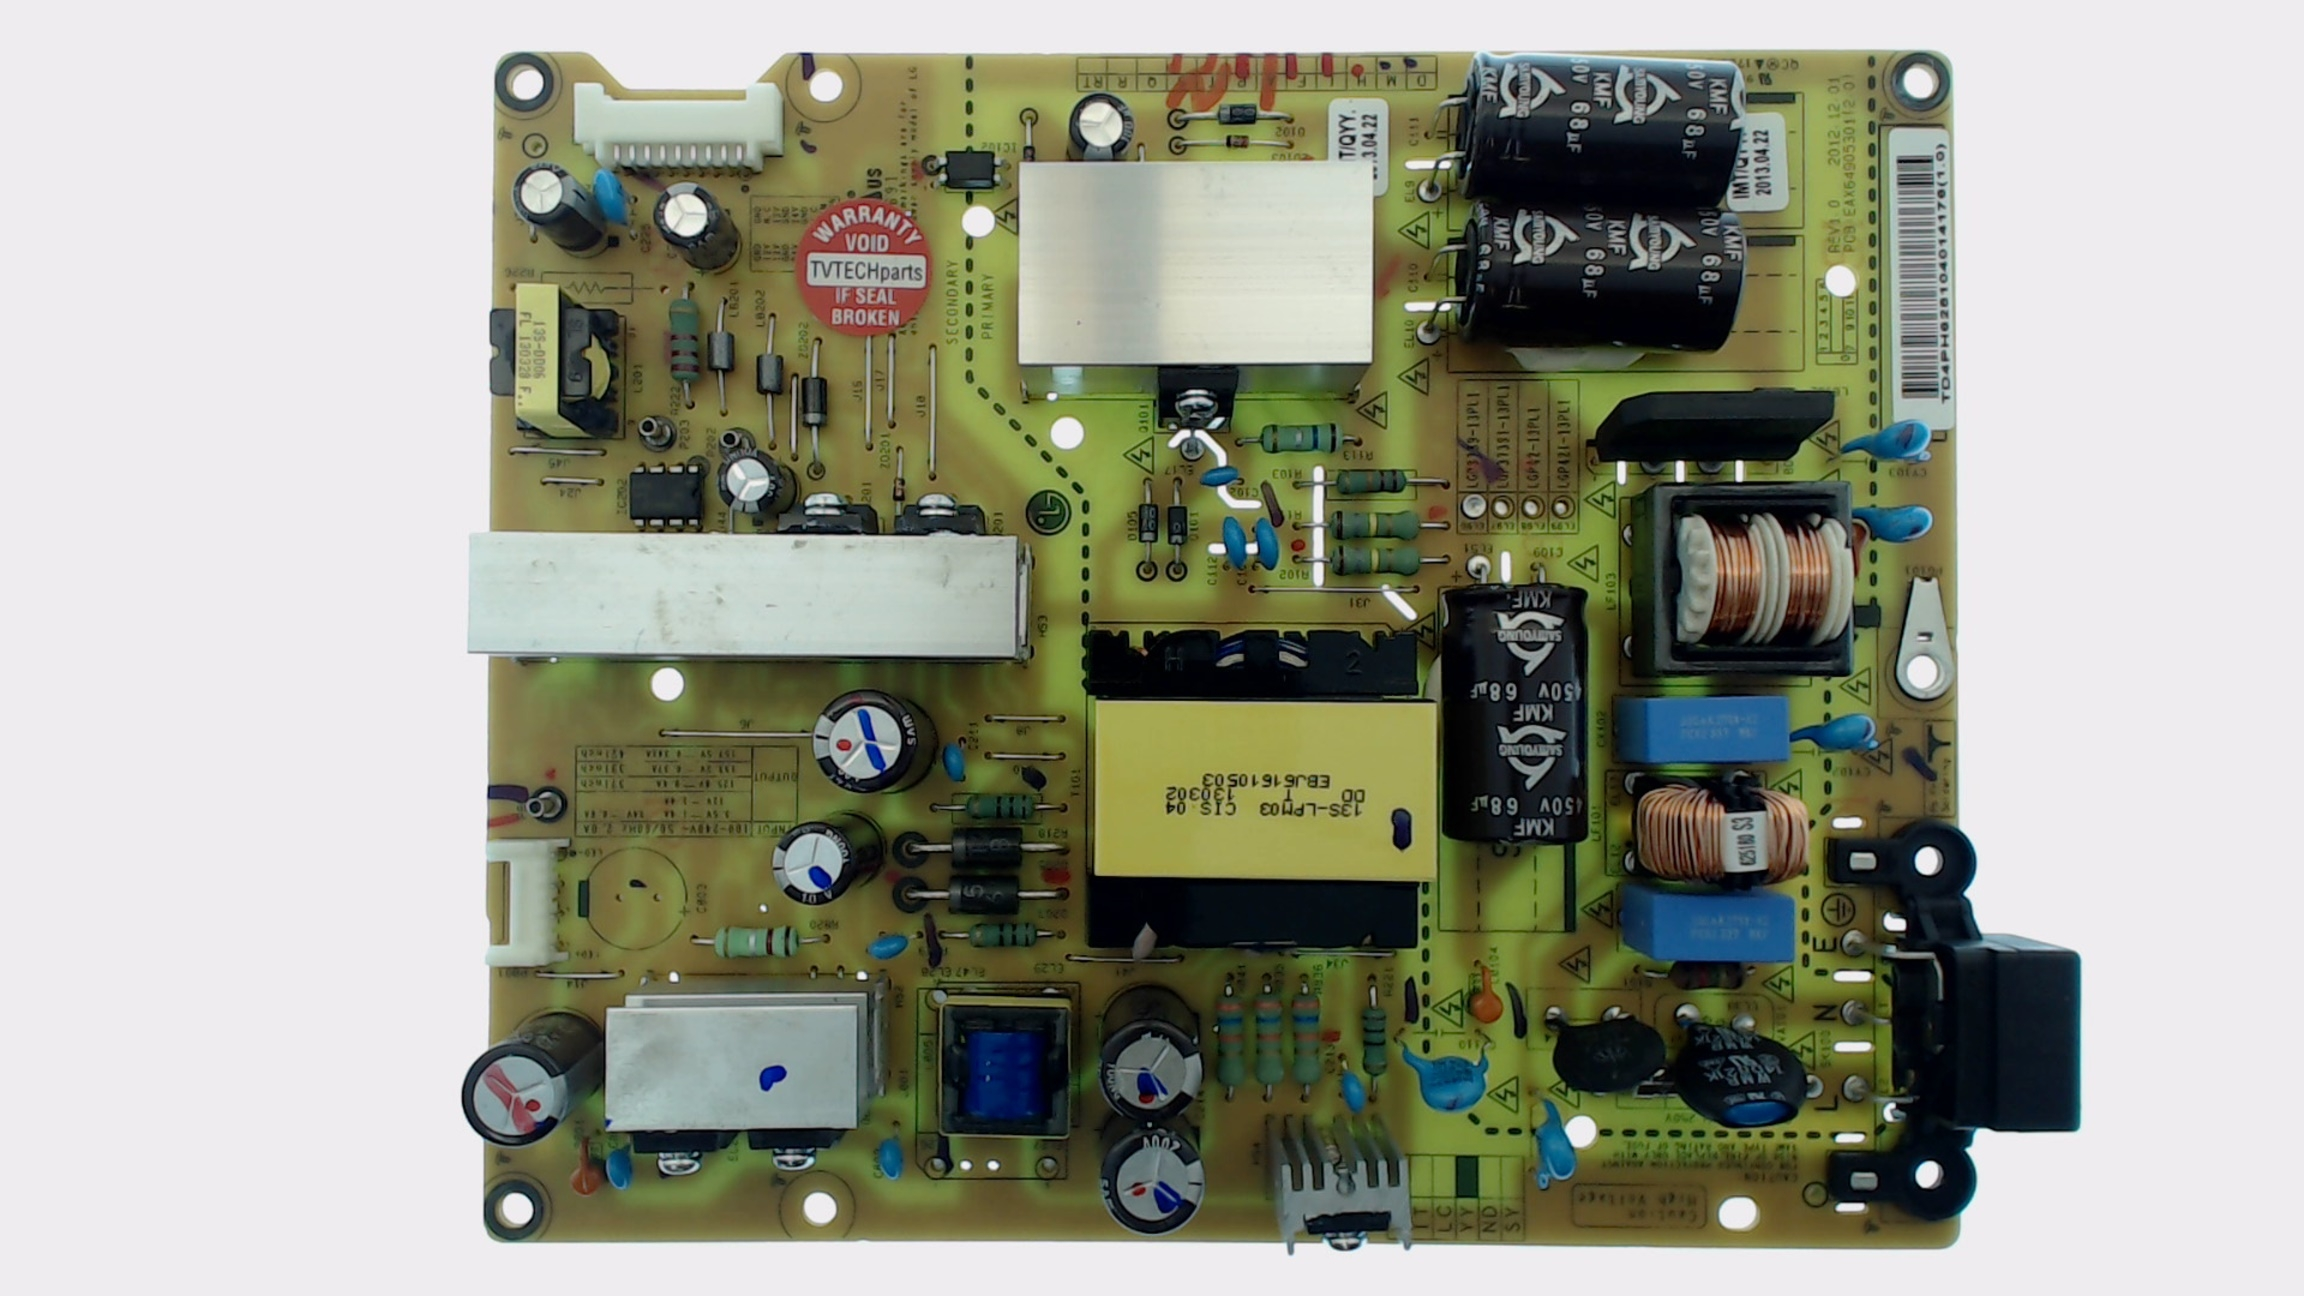 lg tv model 39ln5300 ub power supply board part number eay62810401. Black Bedroom Furniture Sets. Home Design Ideas